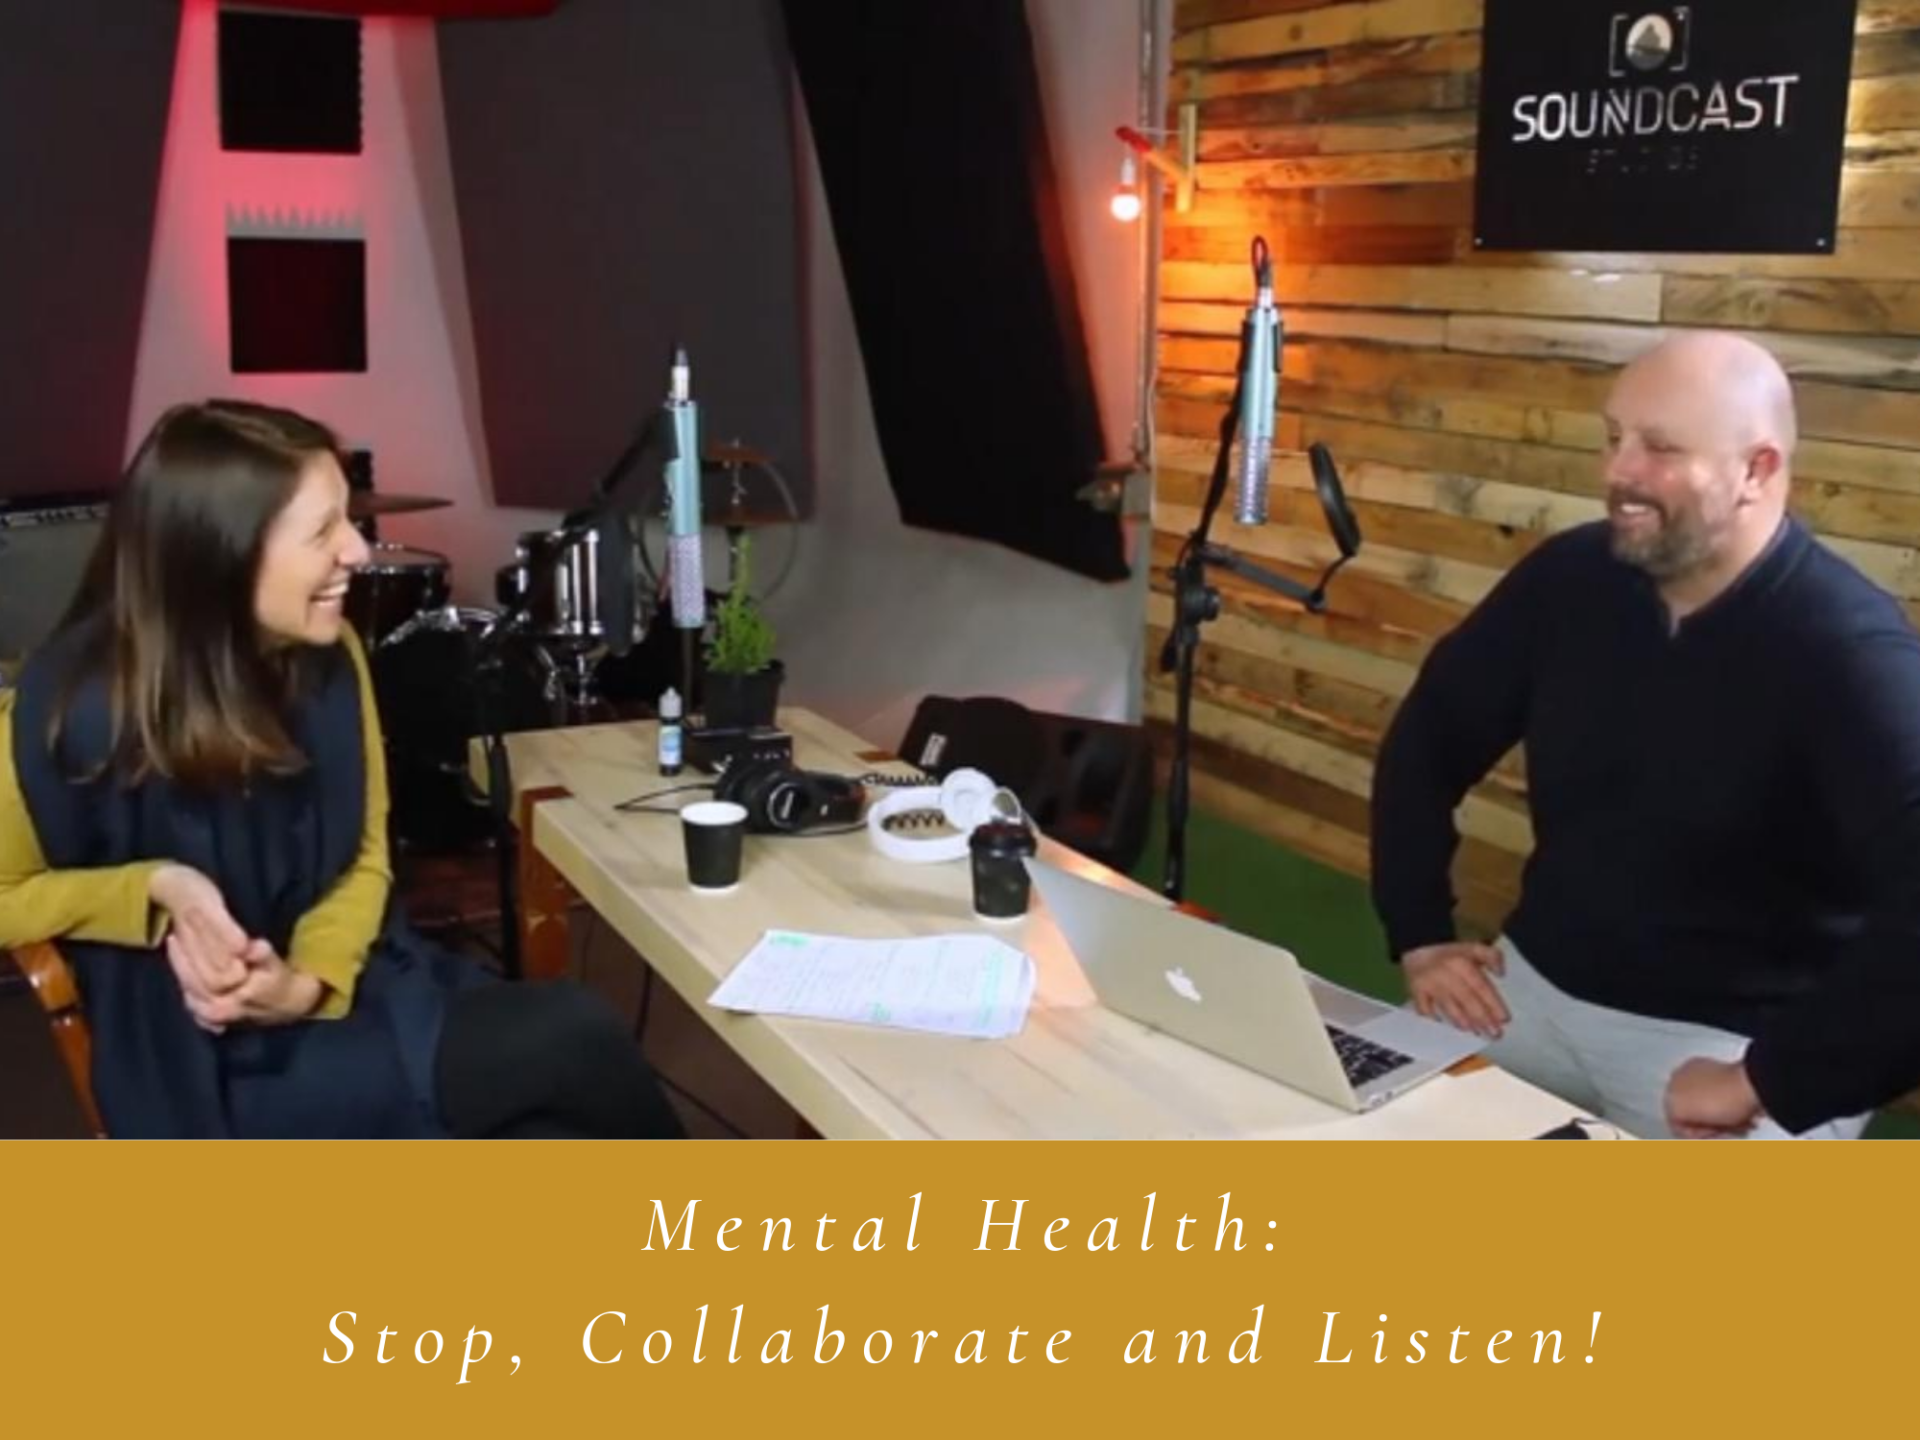 defeating mental health stigma through collaboration